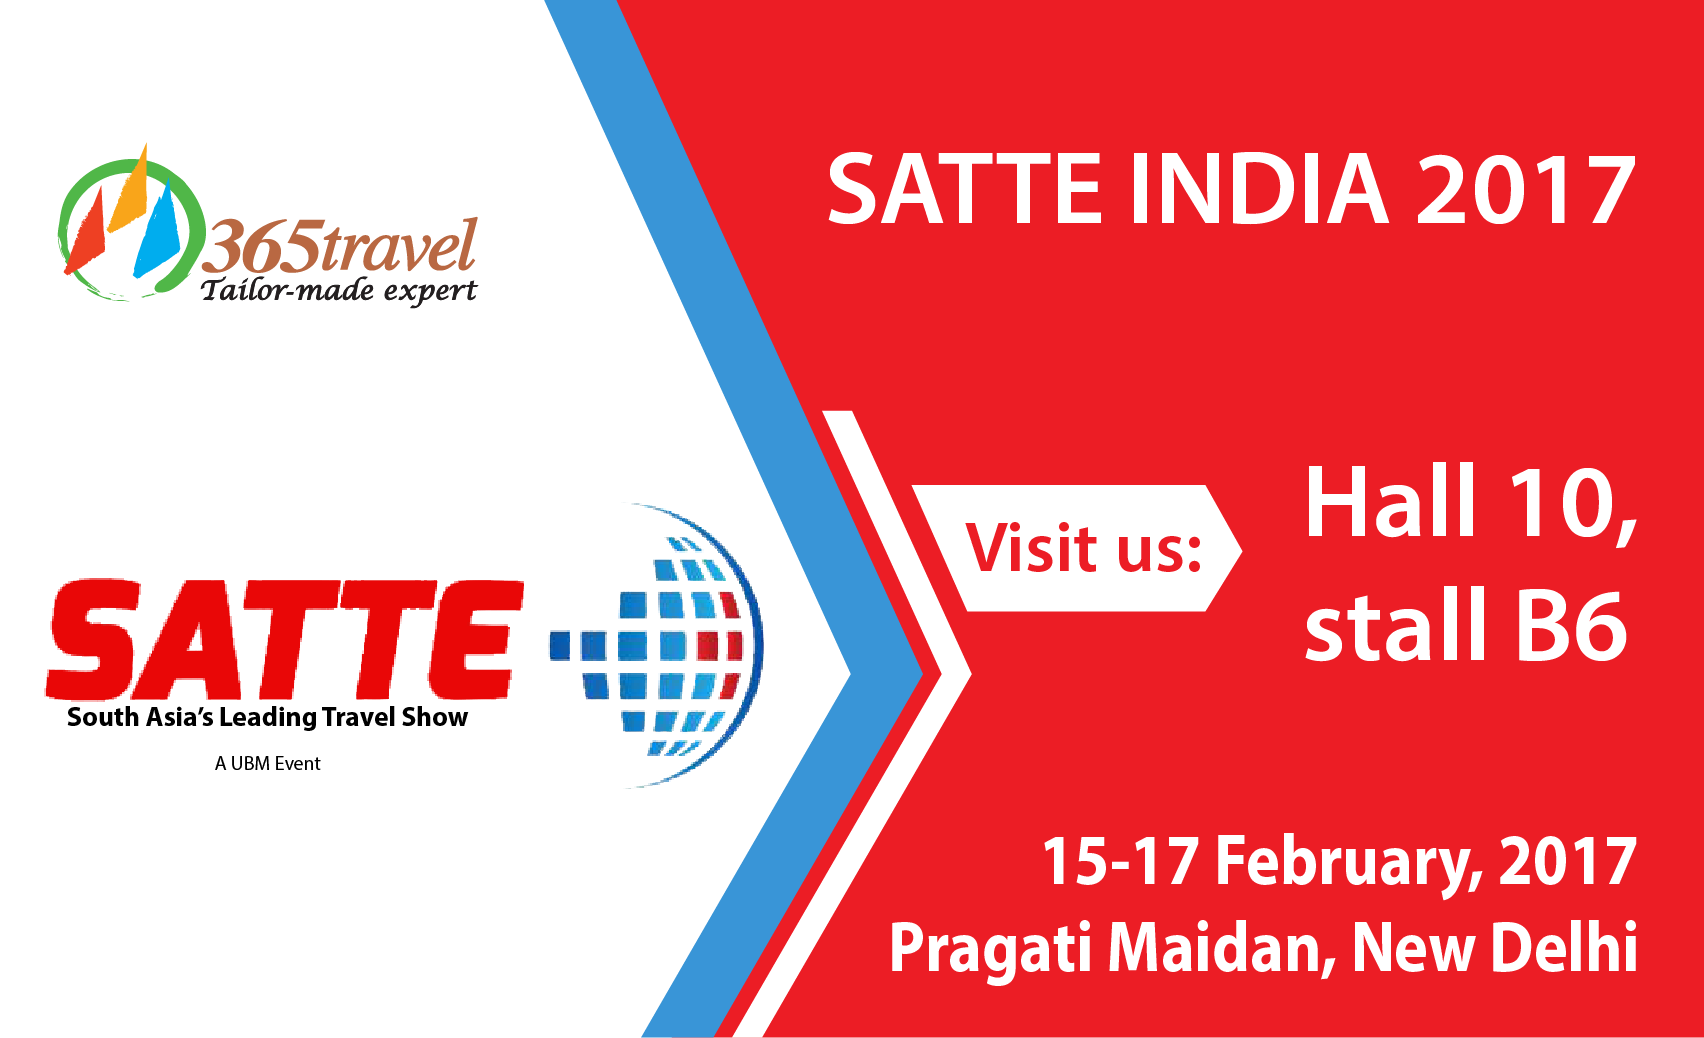 365 Travel At Satte India 2017